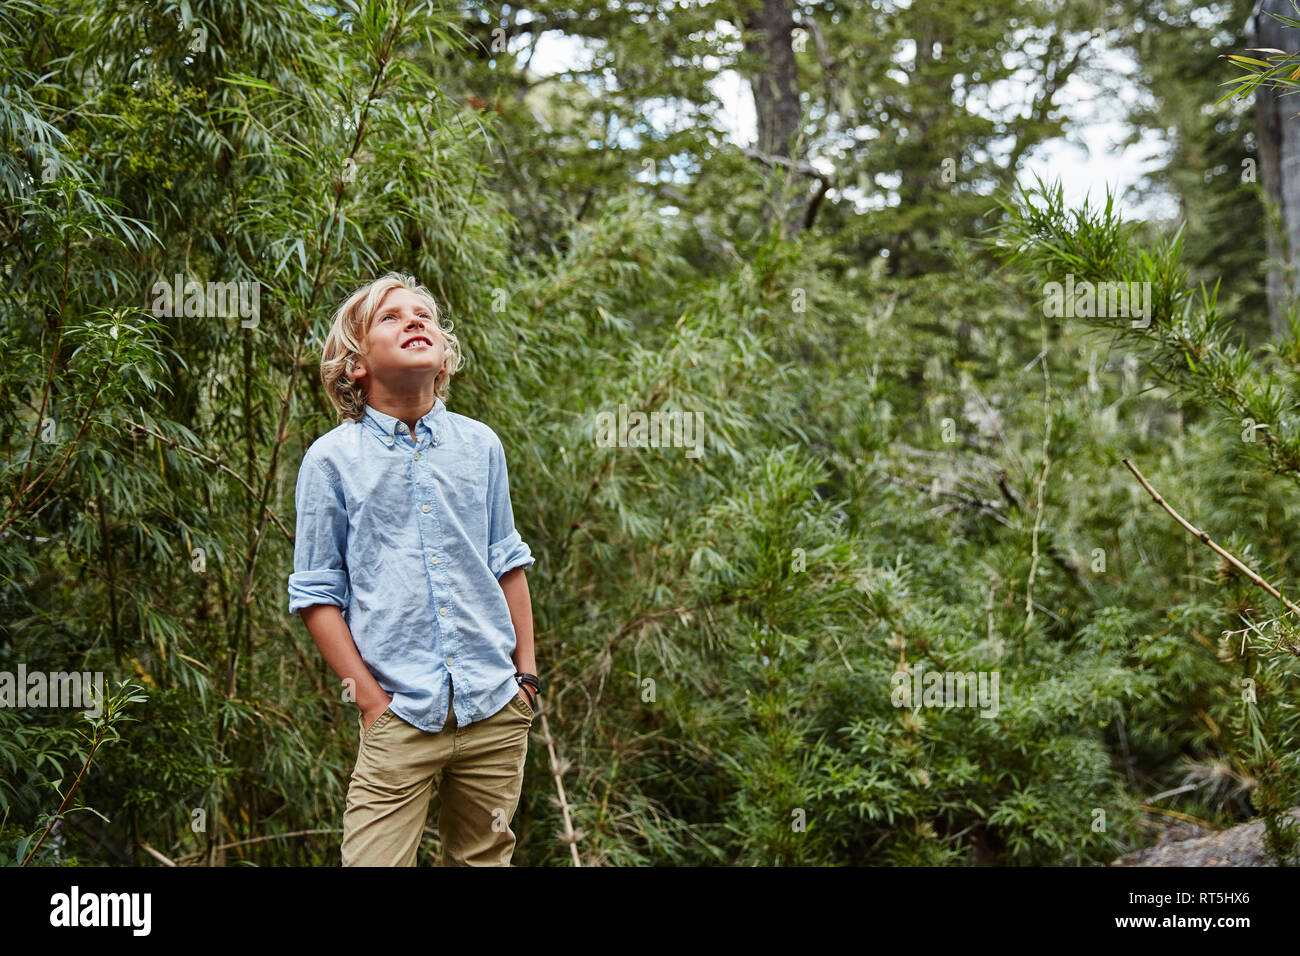 Chile, Puren, Nahuelbuta National Park, boy standing in bamboo forest looking up - Stock Image